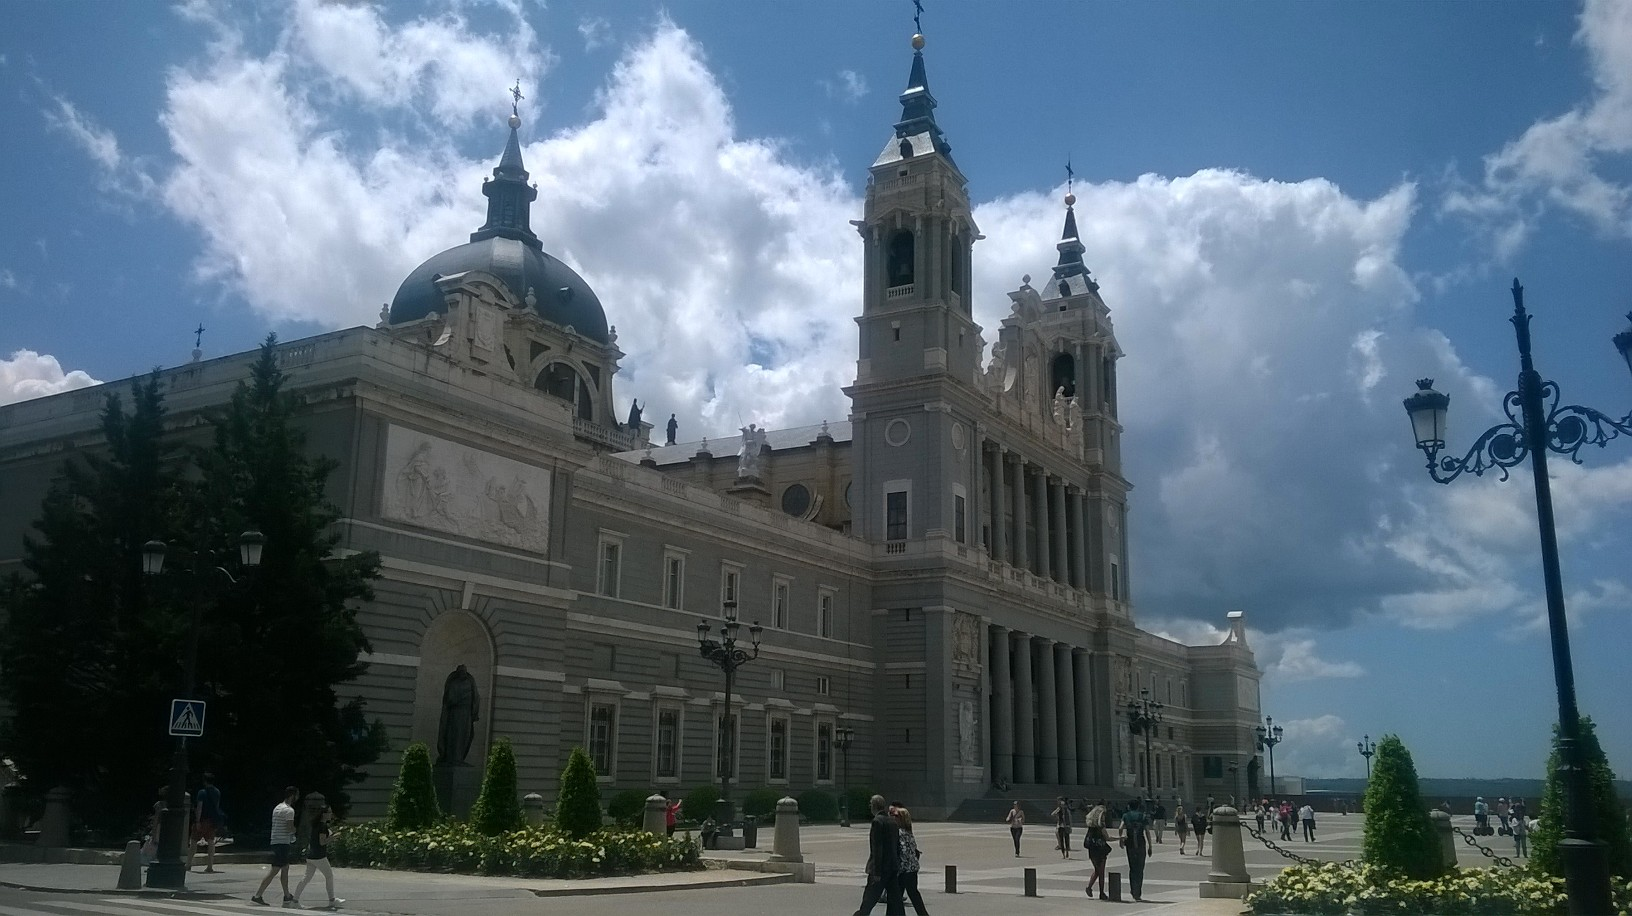 mad-catedral-almudena-may16